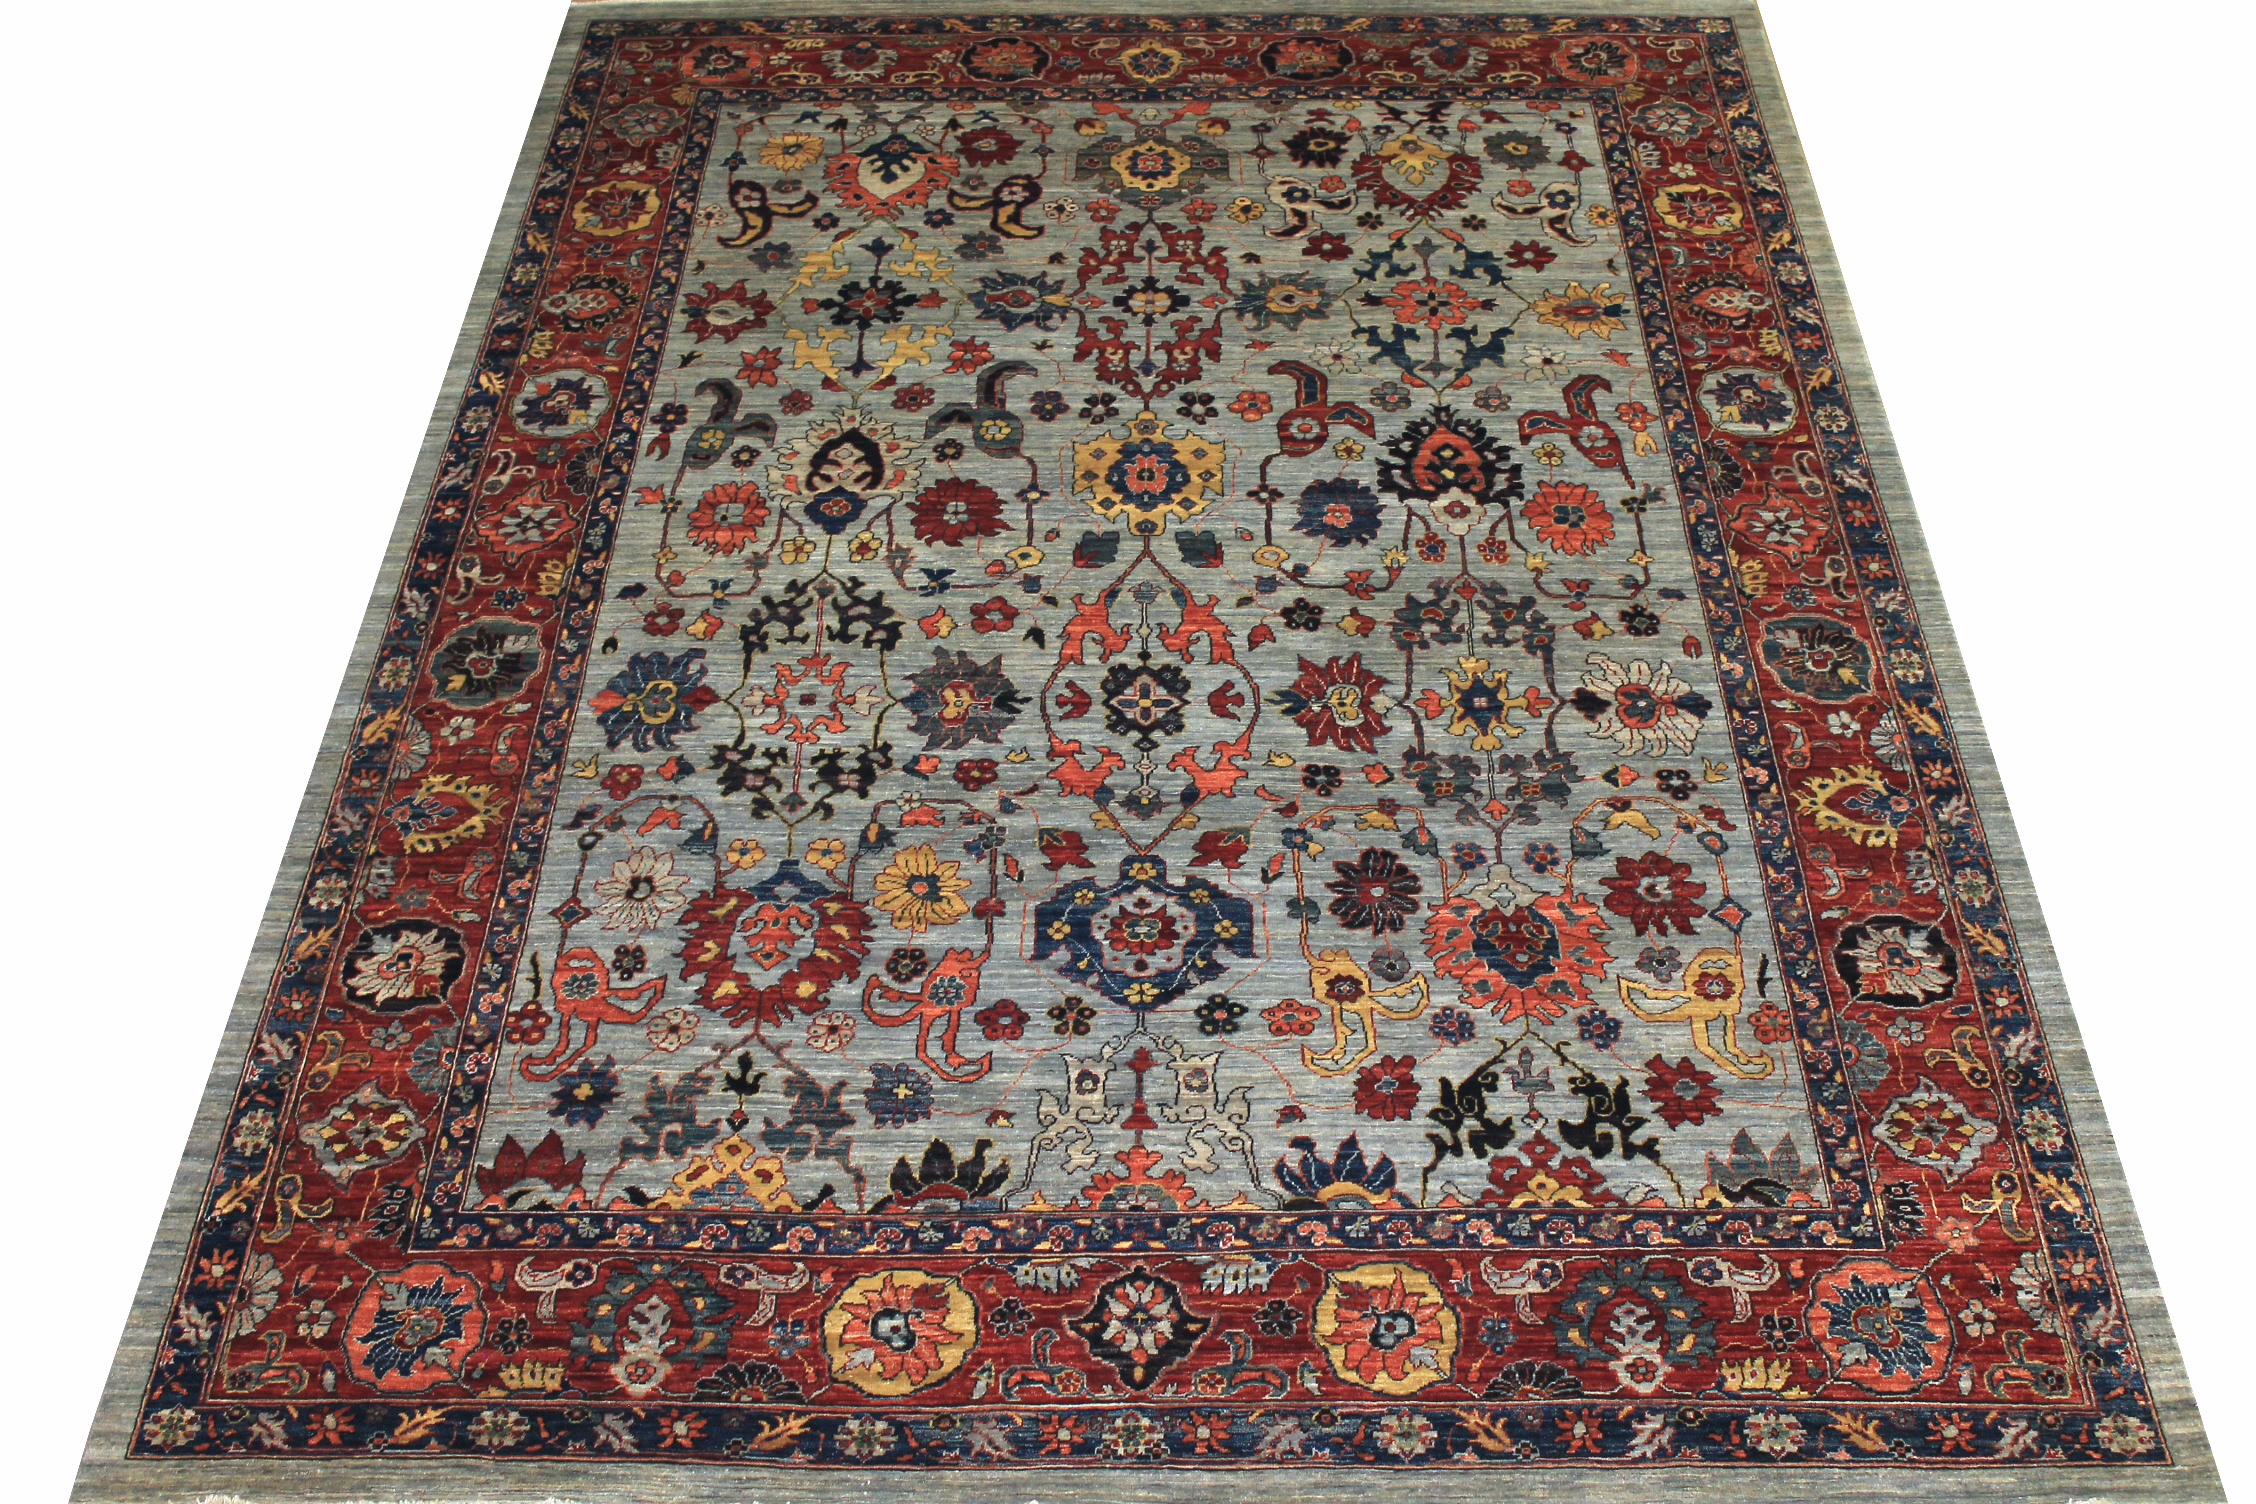 9x12 Antique Revival Hand Knotted Wool Area Rug - MR024560